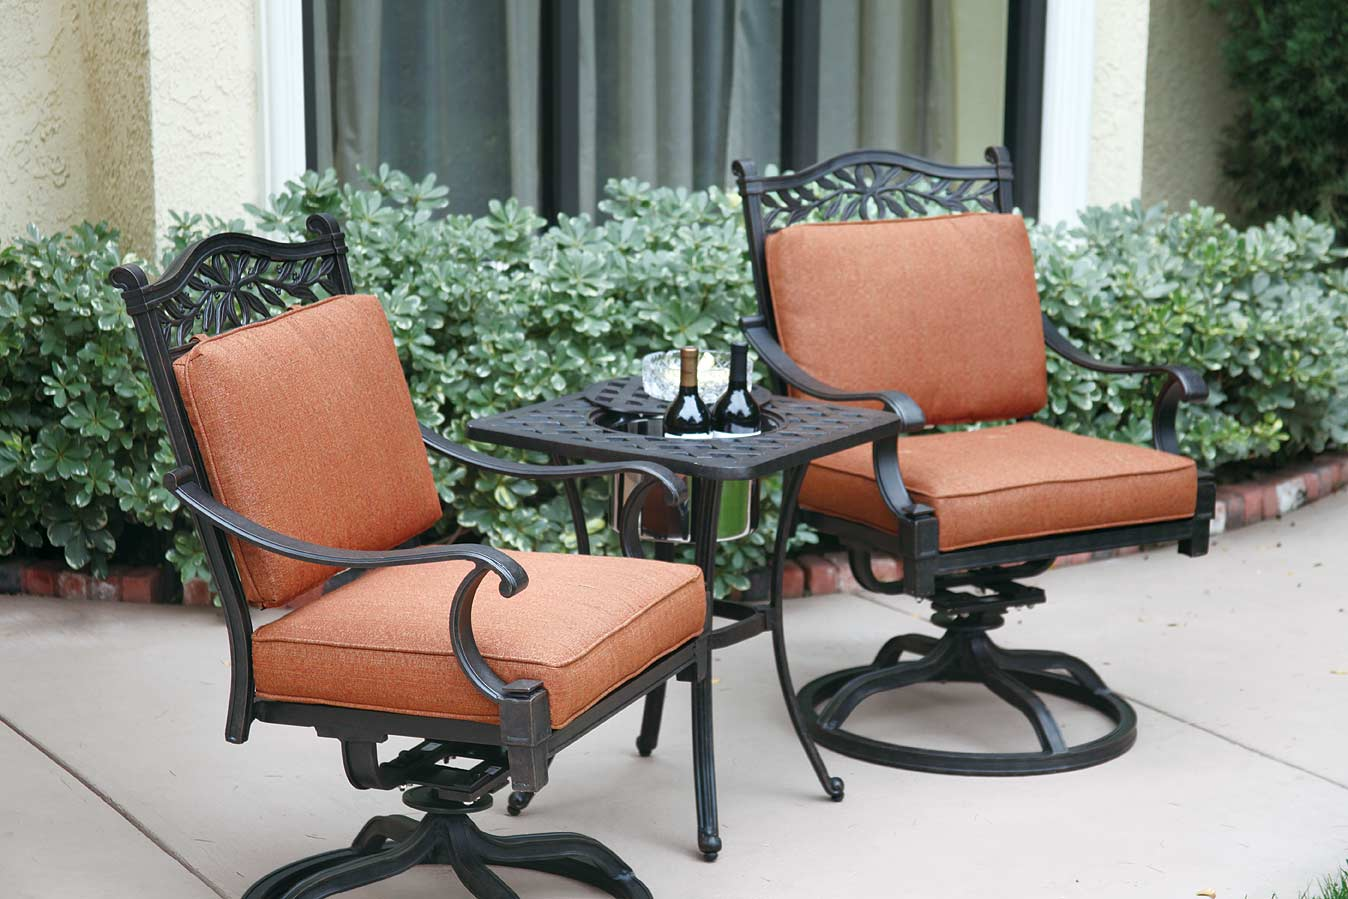 Patio Furniture Bistro Set Cast Aluminum Swivel Rocker 3pc Charleston